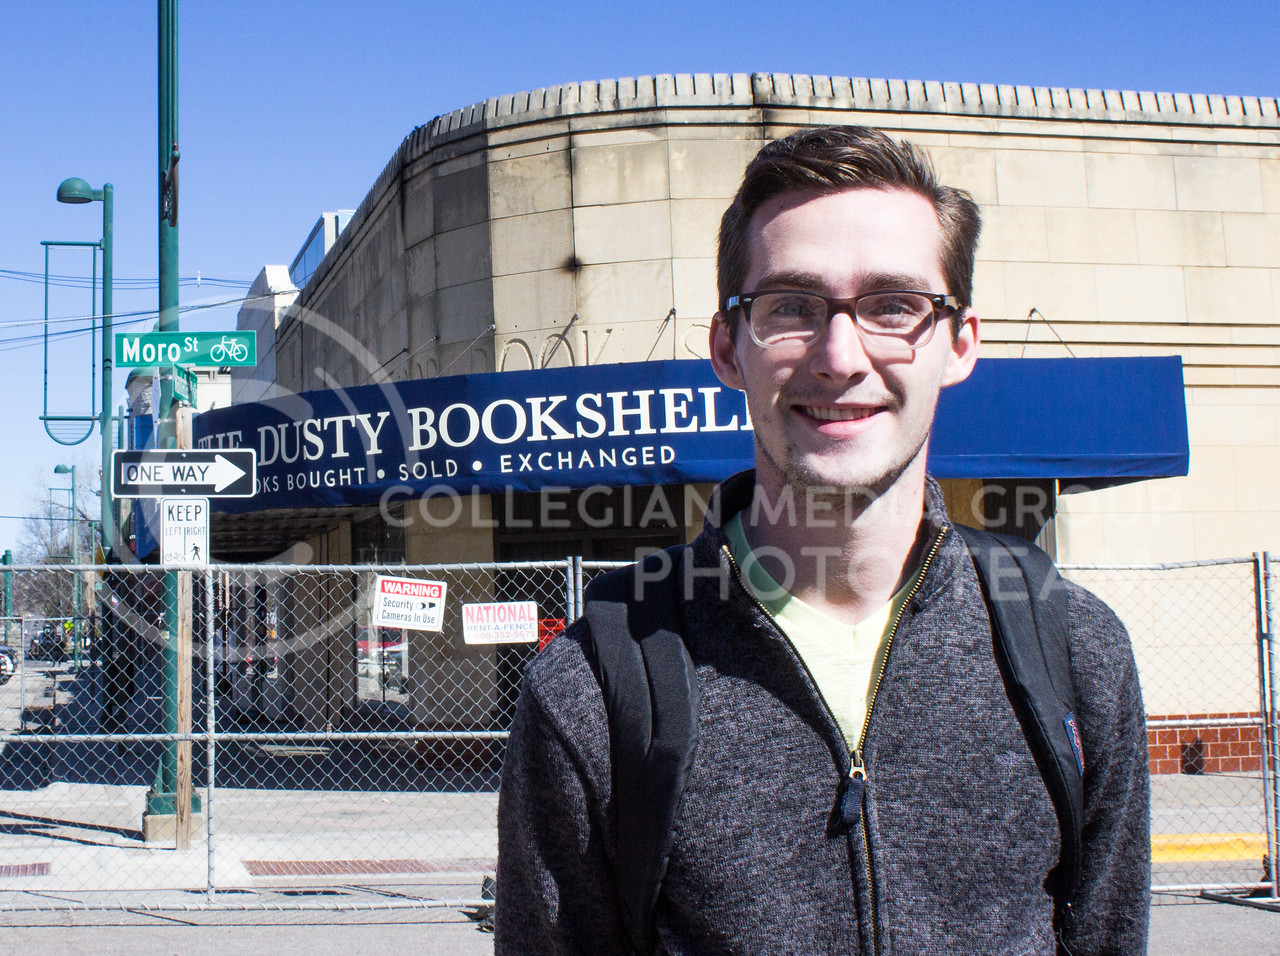 """""""I love the Dusty Bookshelf. I'm a big reader. I stopped by and looked at the dollar bookshelf everyday so I really miss that part of my walk home."""" -Patrick Kenney, senior in political science (Regan Tokos 